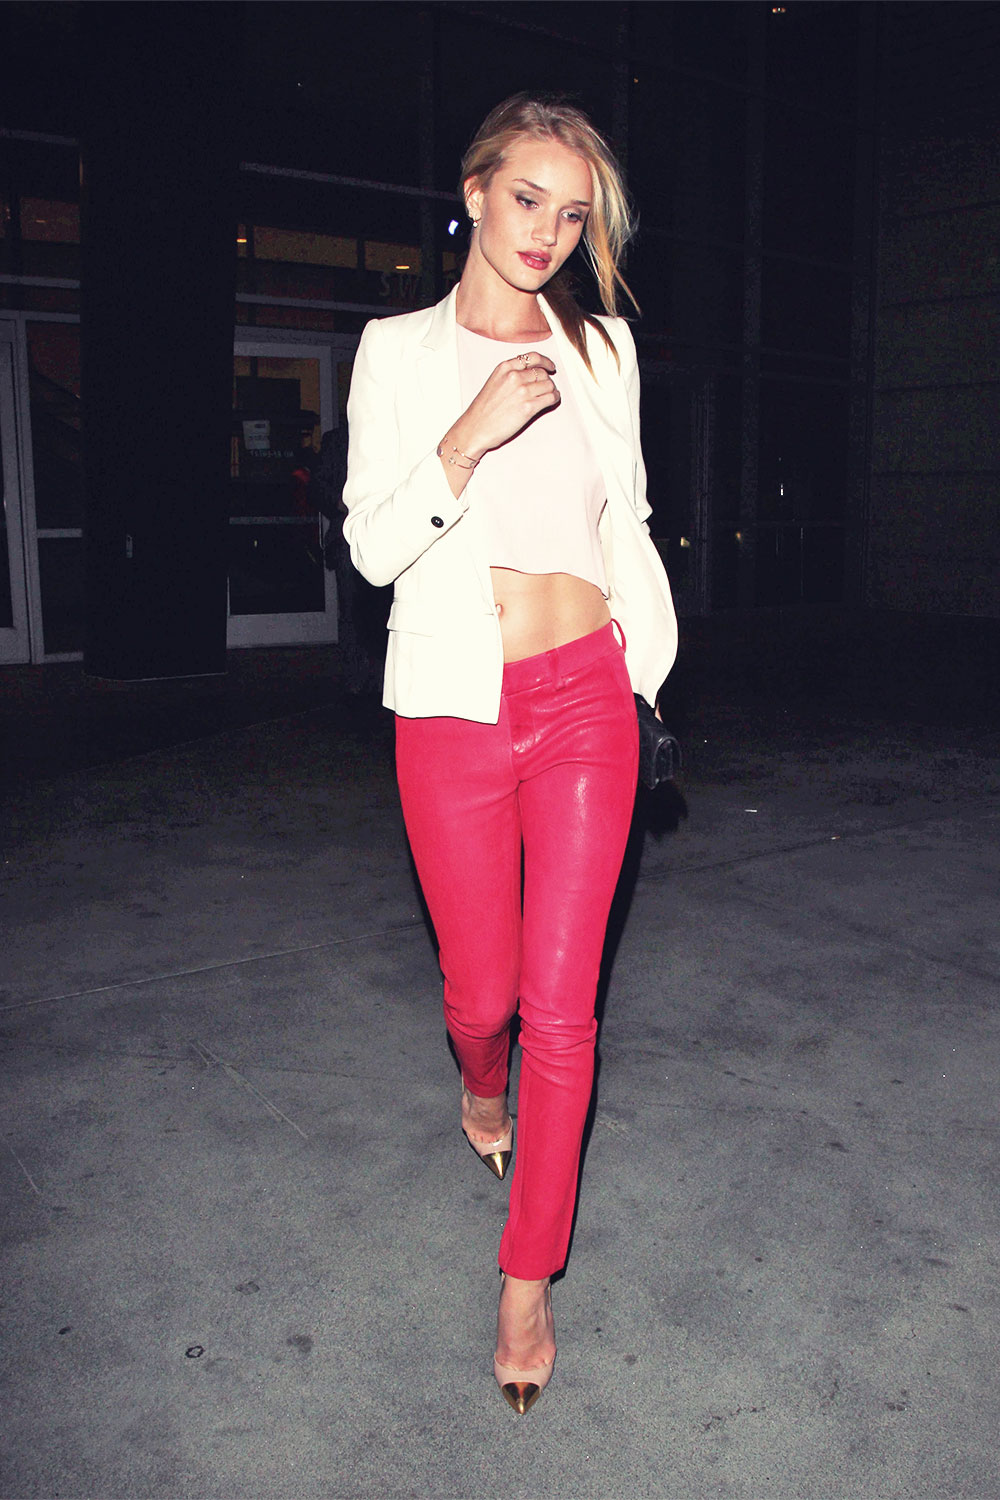 Rosie Huntington-Whiteley attends Rihanna concert